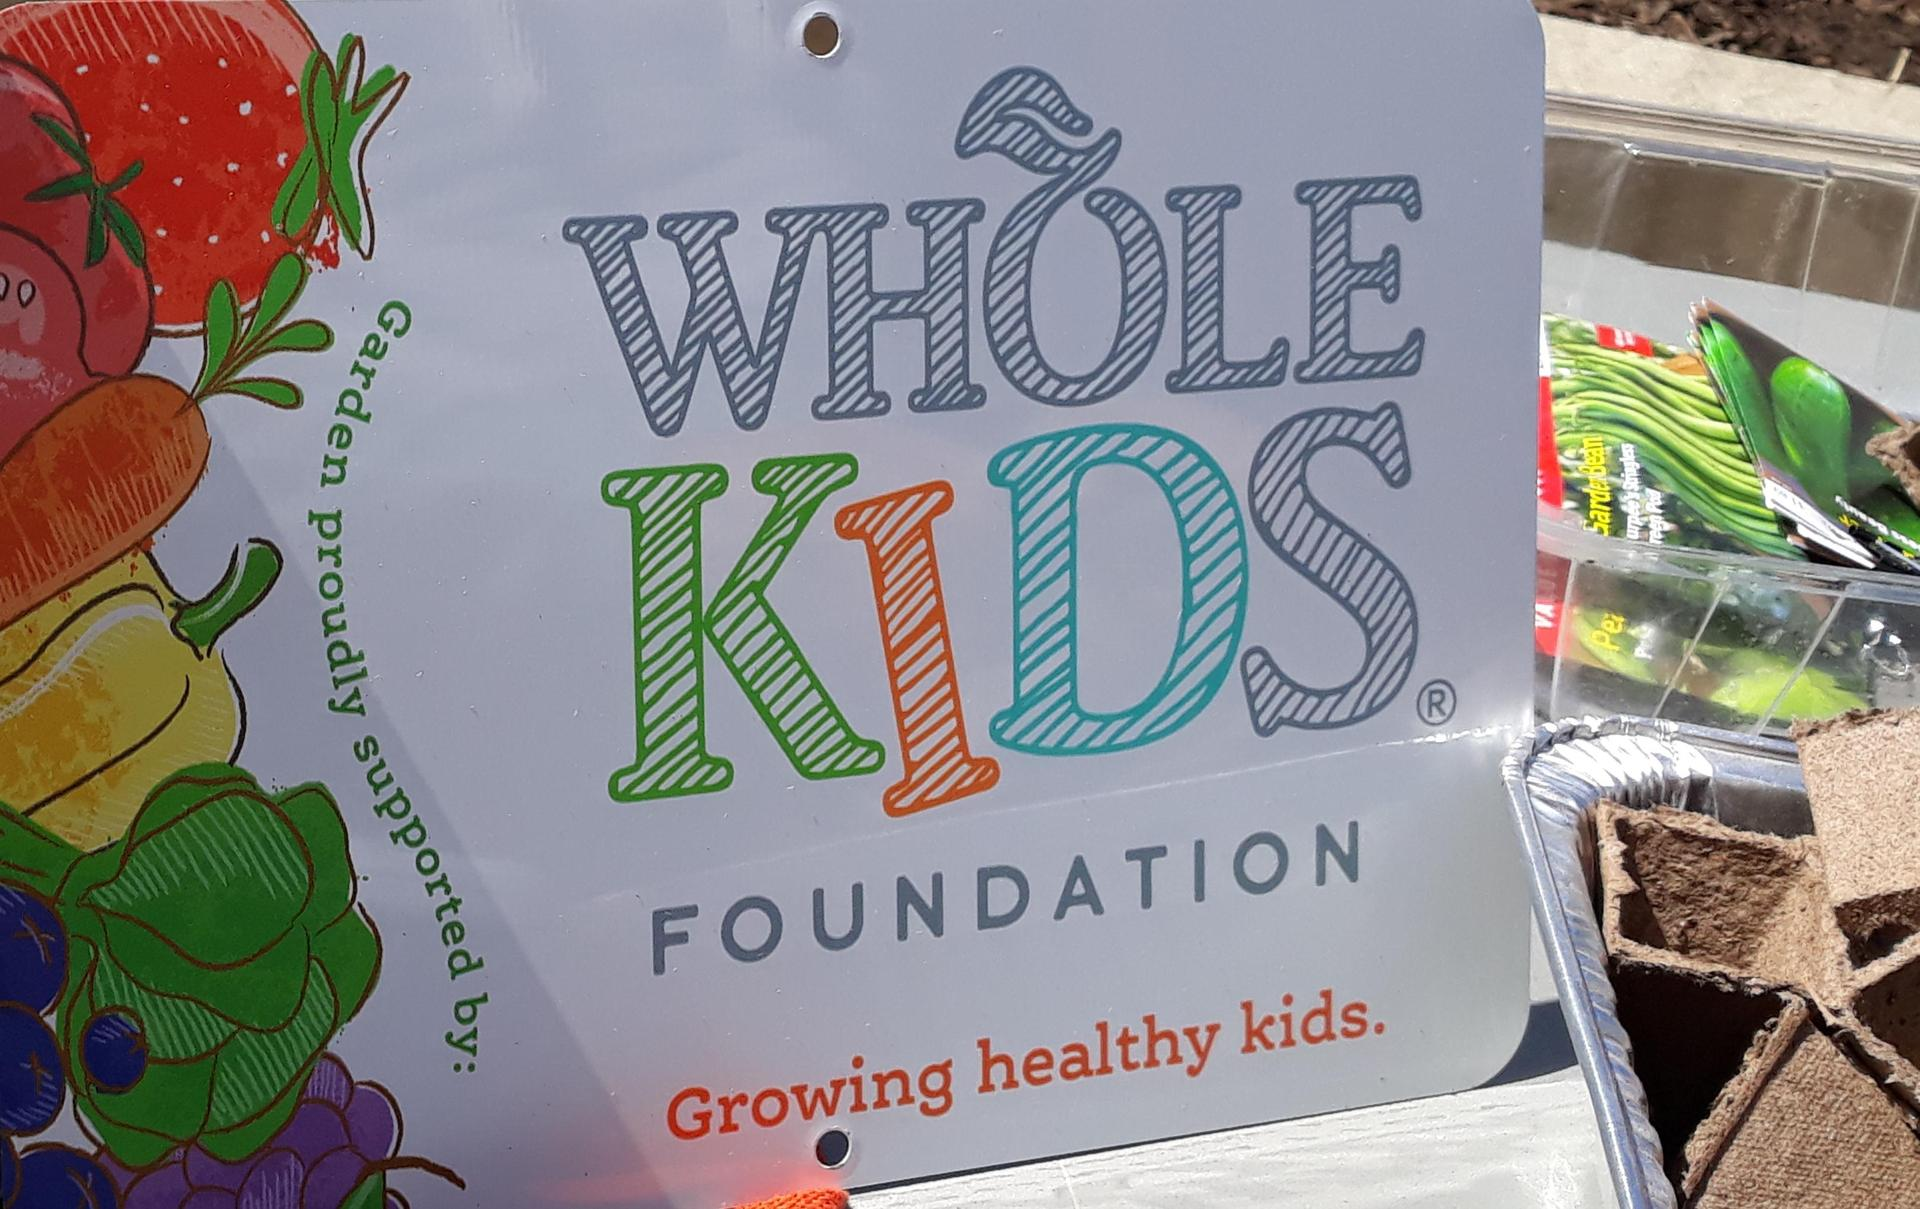 Partnership with Whole Foods